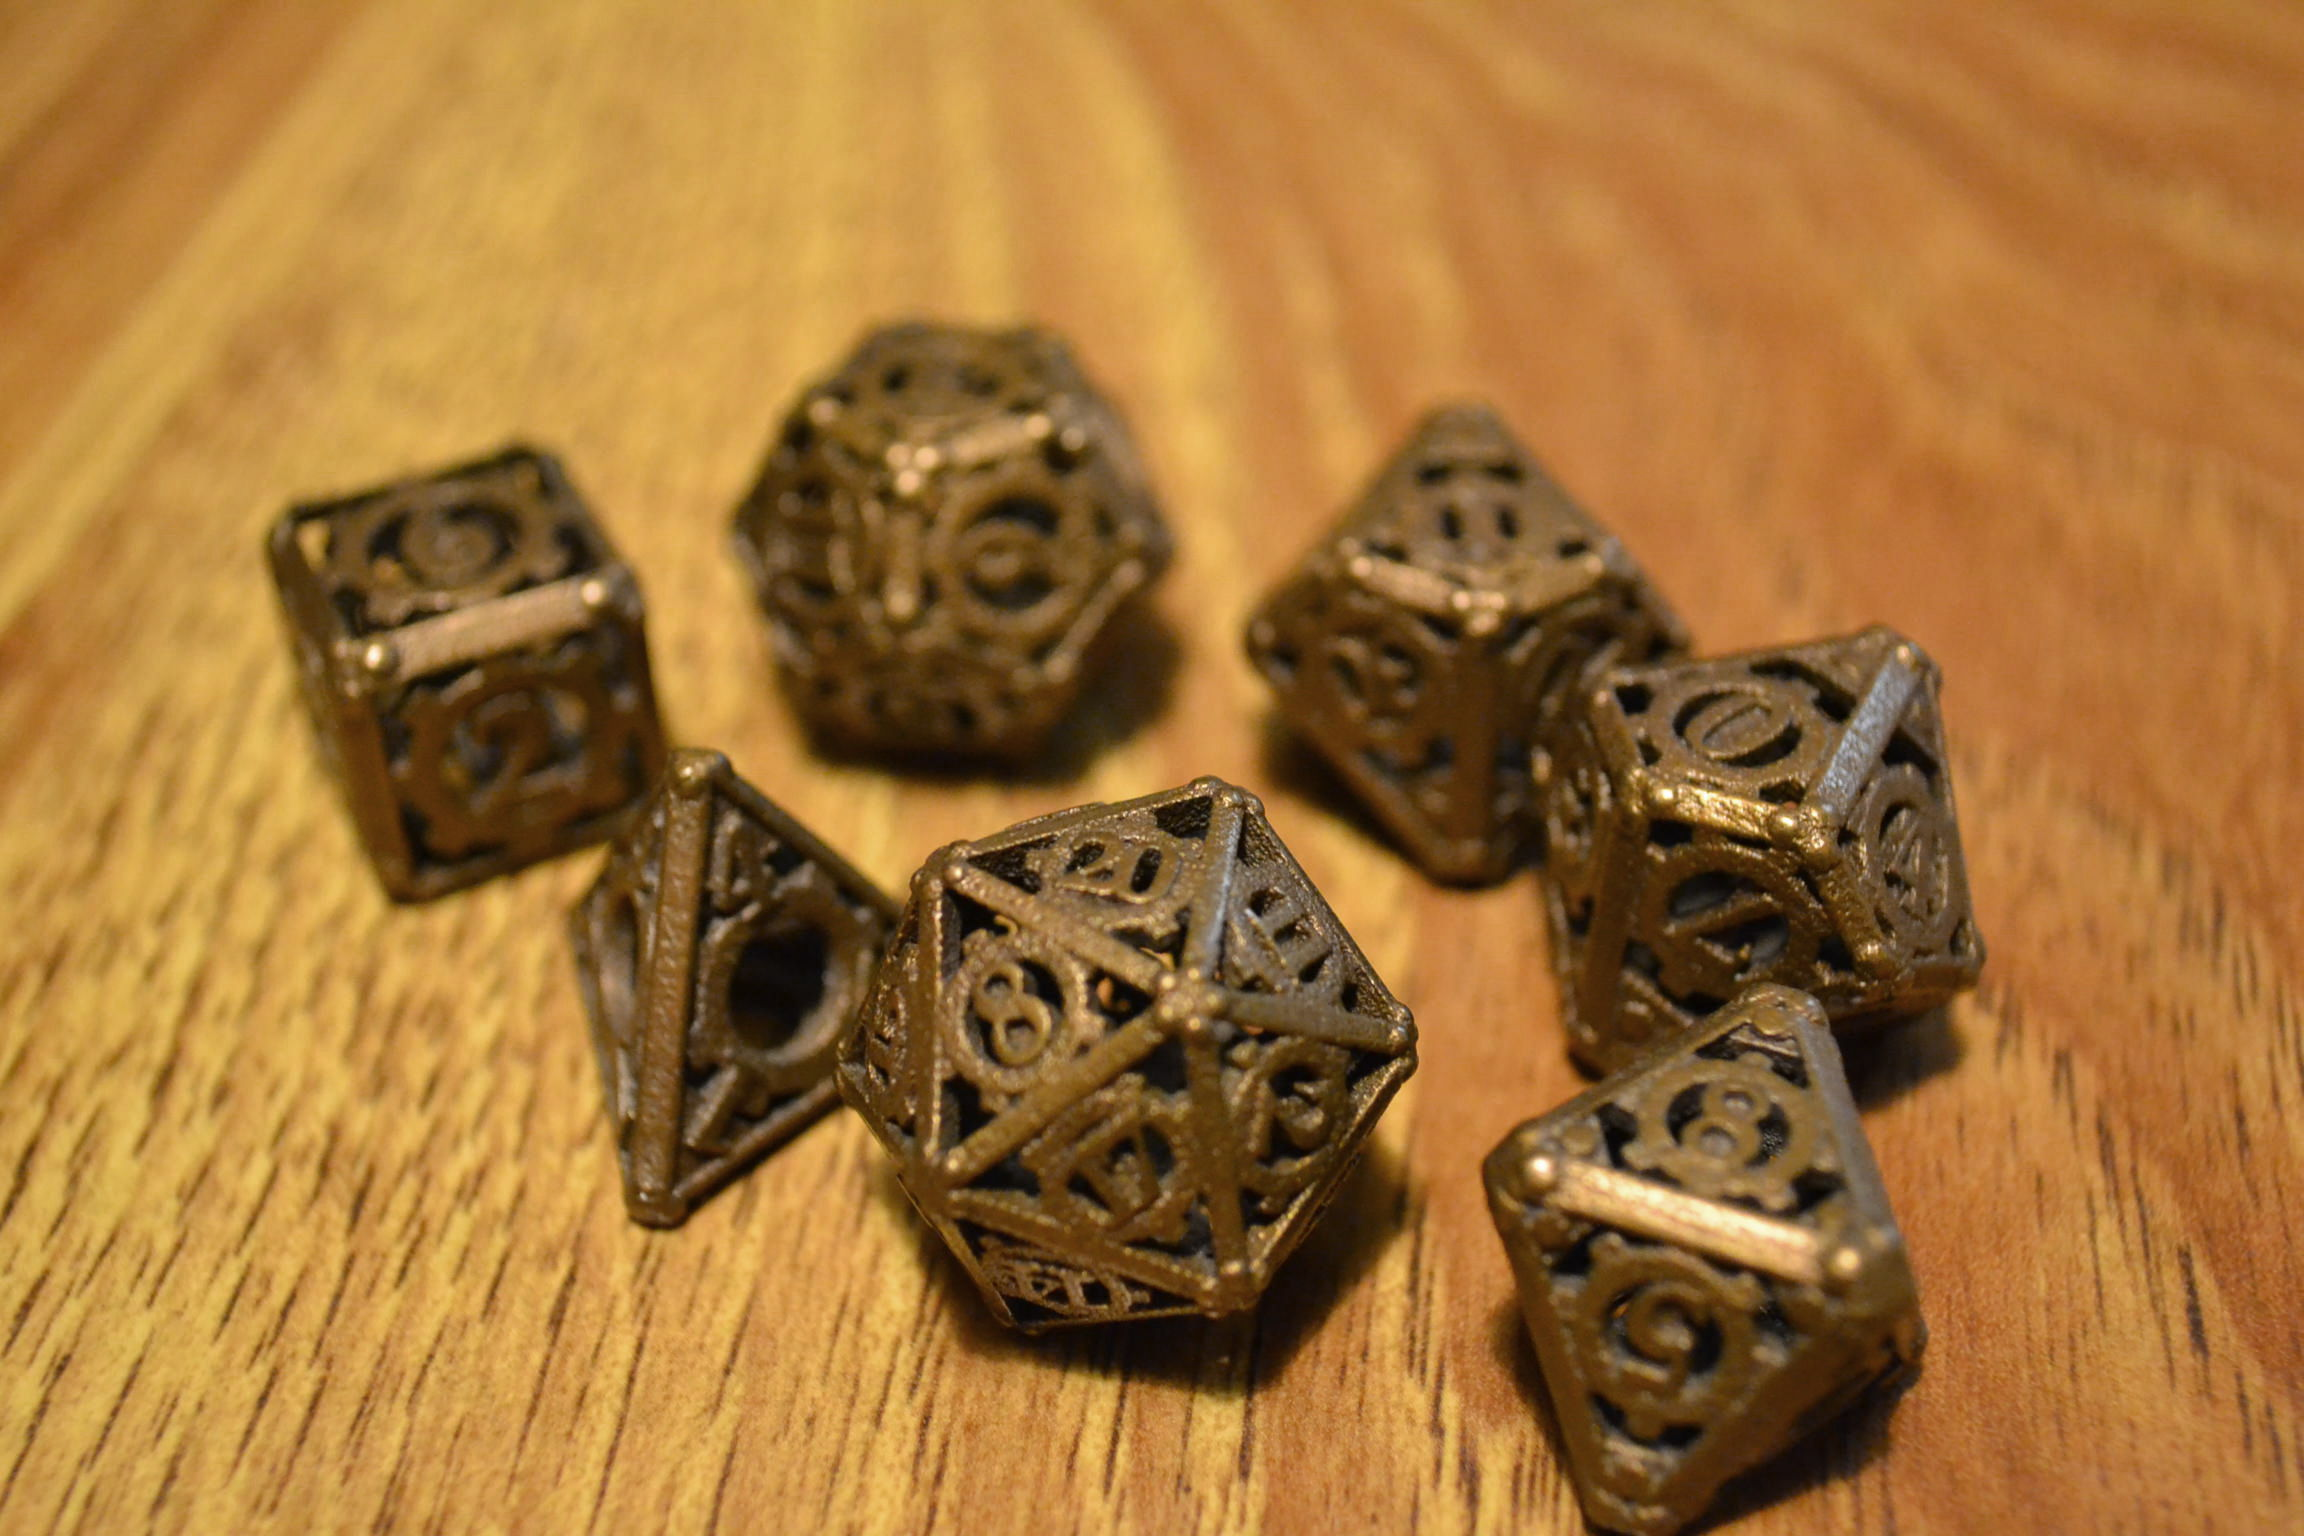 The funky dice used in our Dungeons & Dragons team building sessions